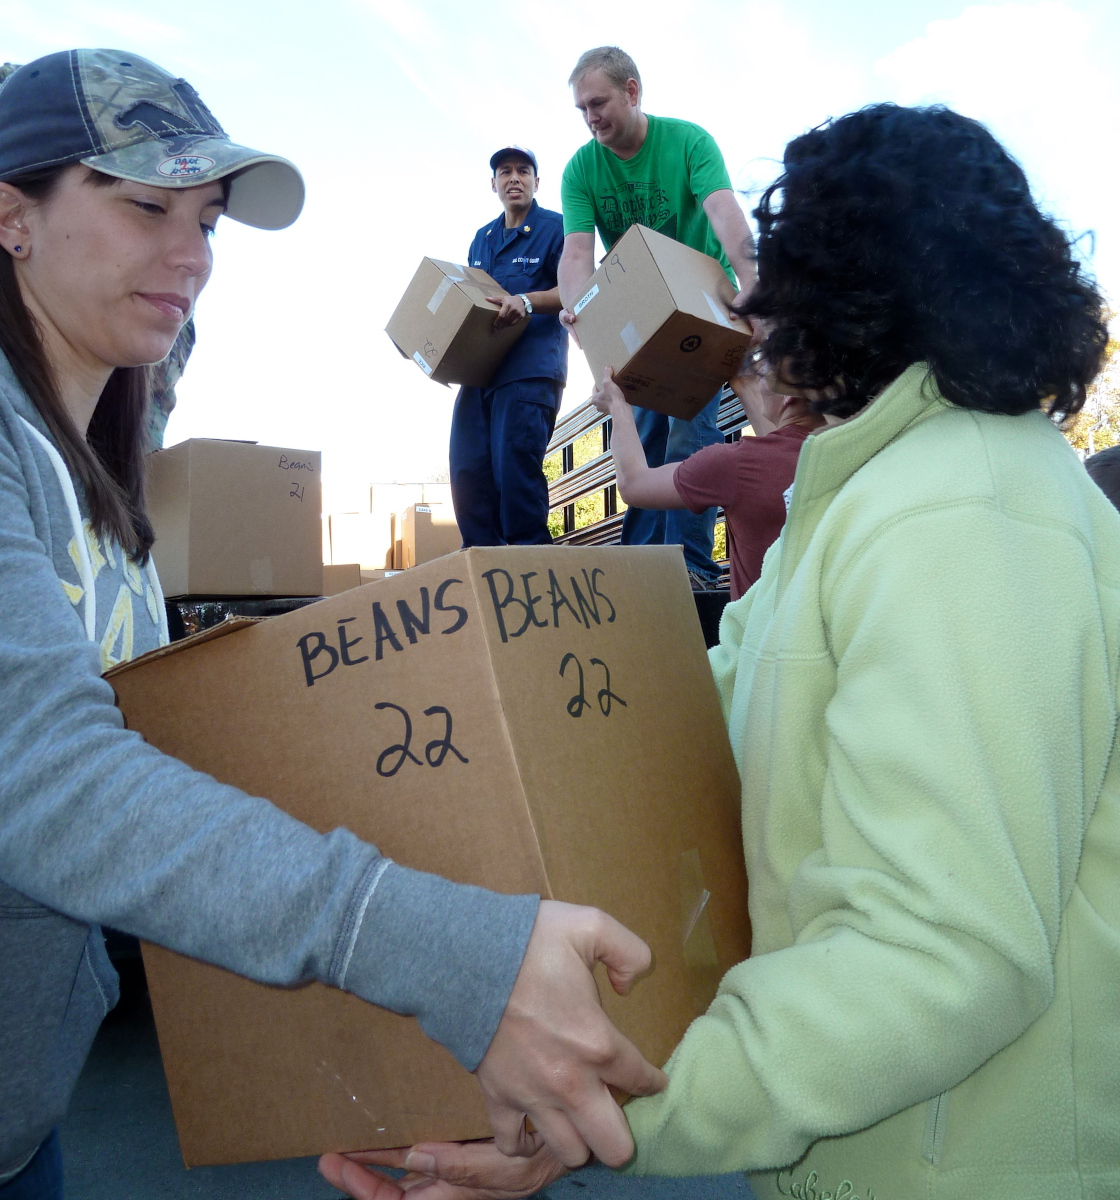 Food bank volunteers carrying boxes of canned beans